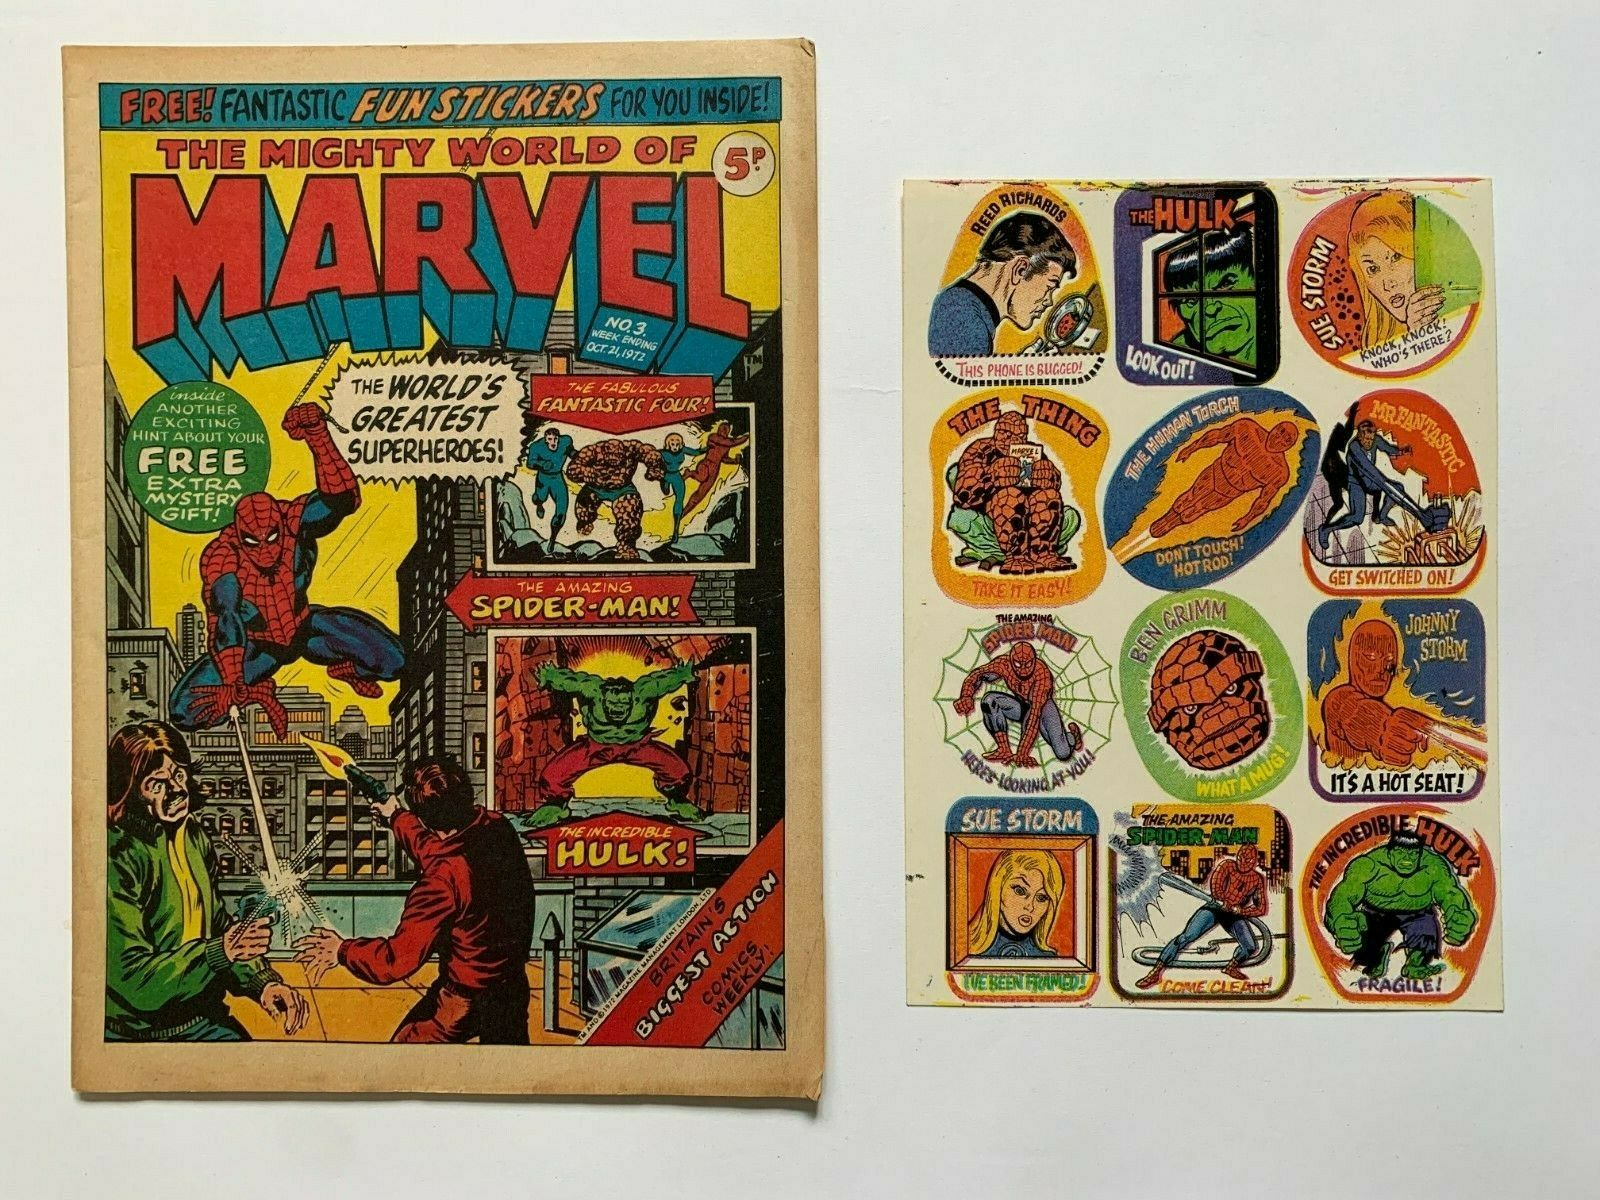 MIGHTY WORLD OF MARVEL NO 3 - 1972 + FREE GIFT STICKERS - FINE/VERY FINE